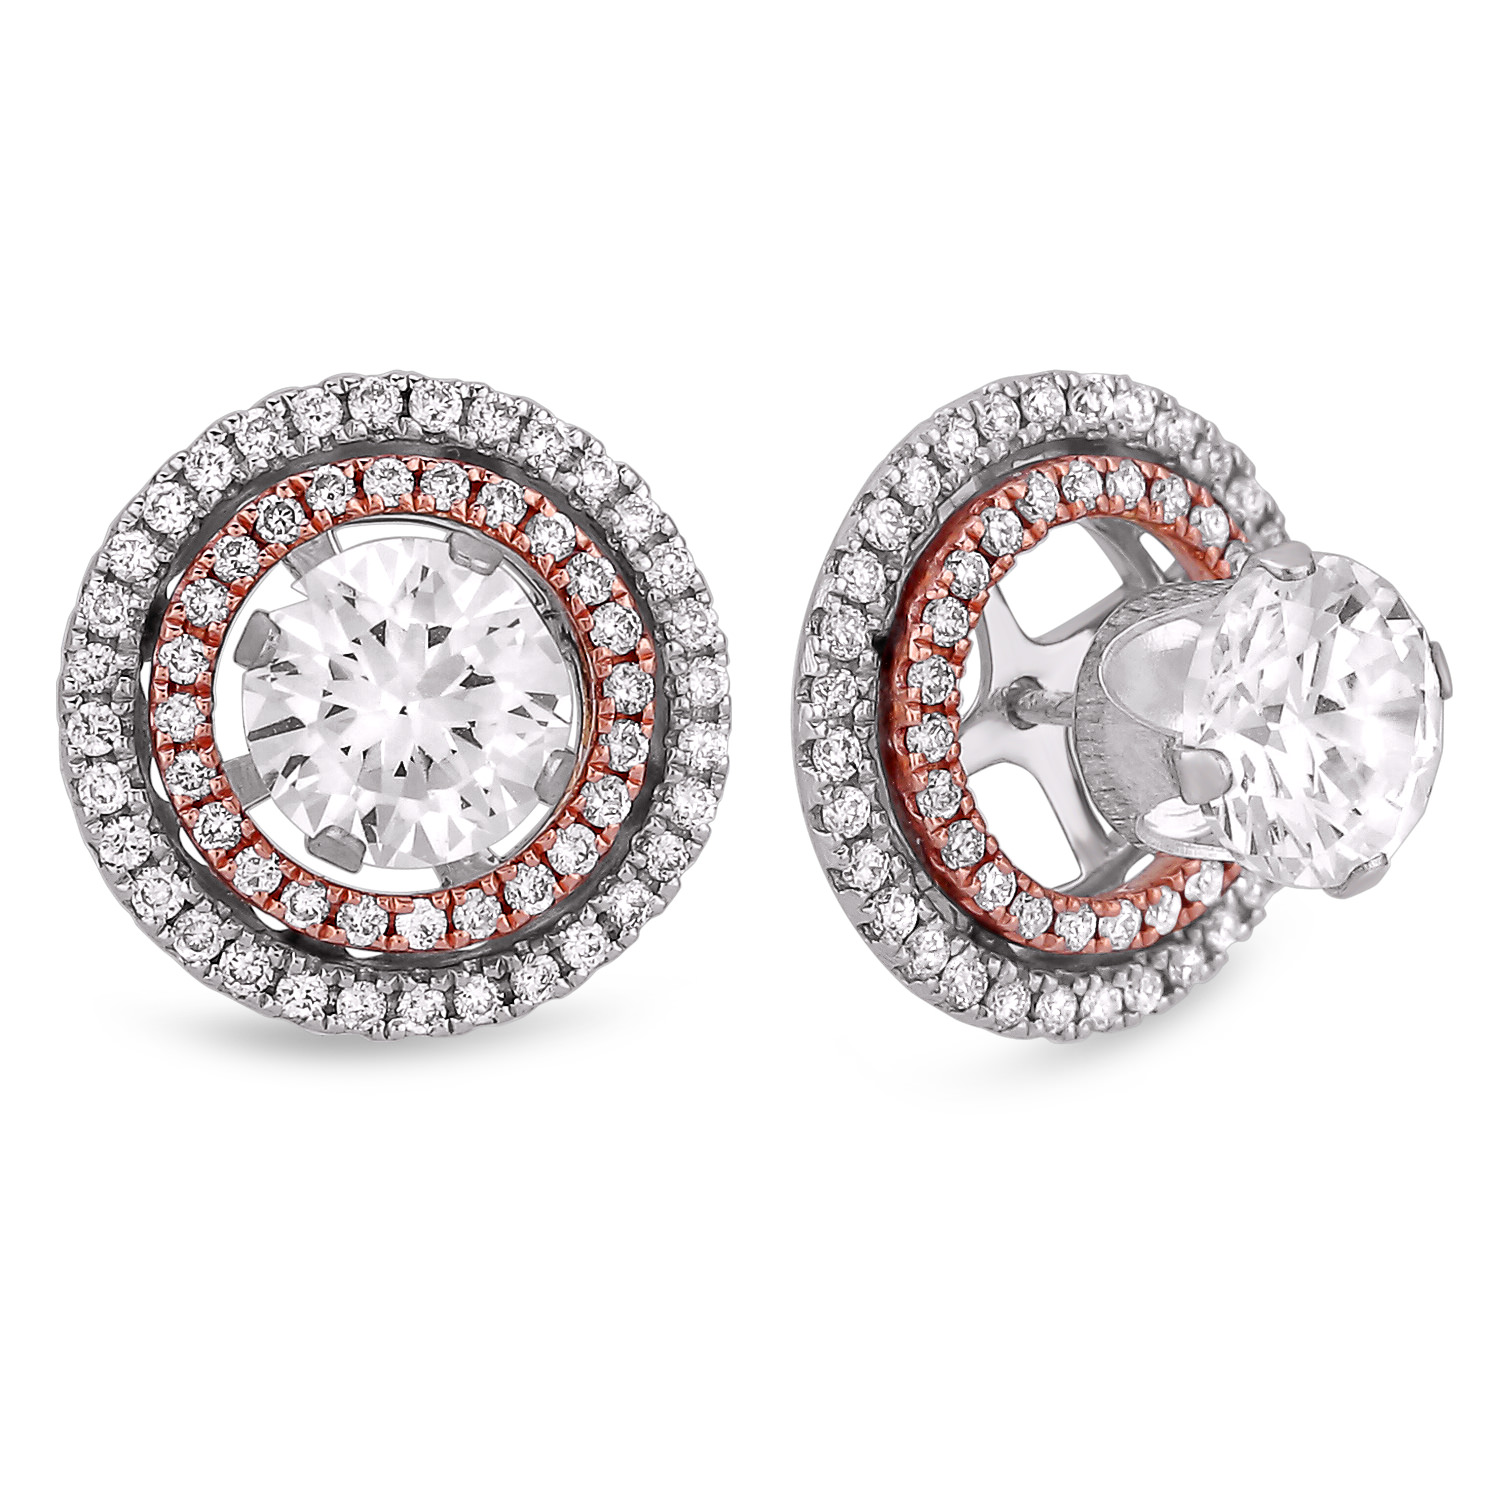 Diamond Stud Earrings SGE260 (Earrings)